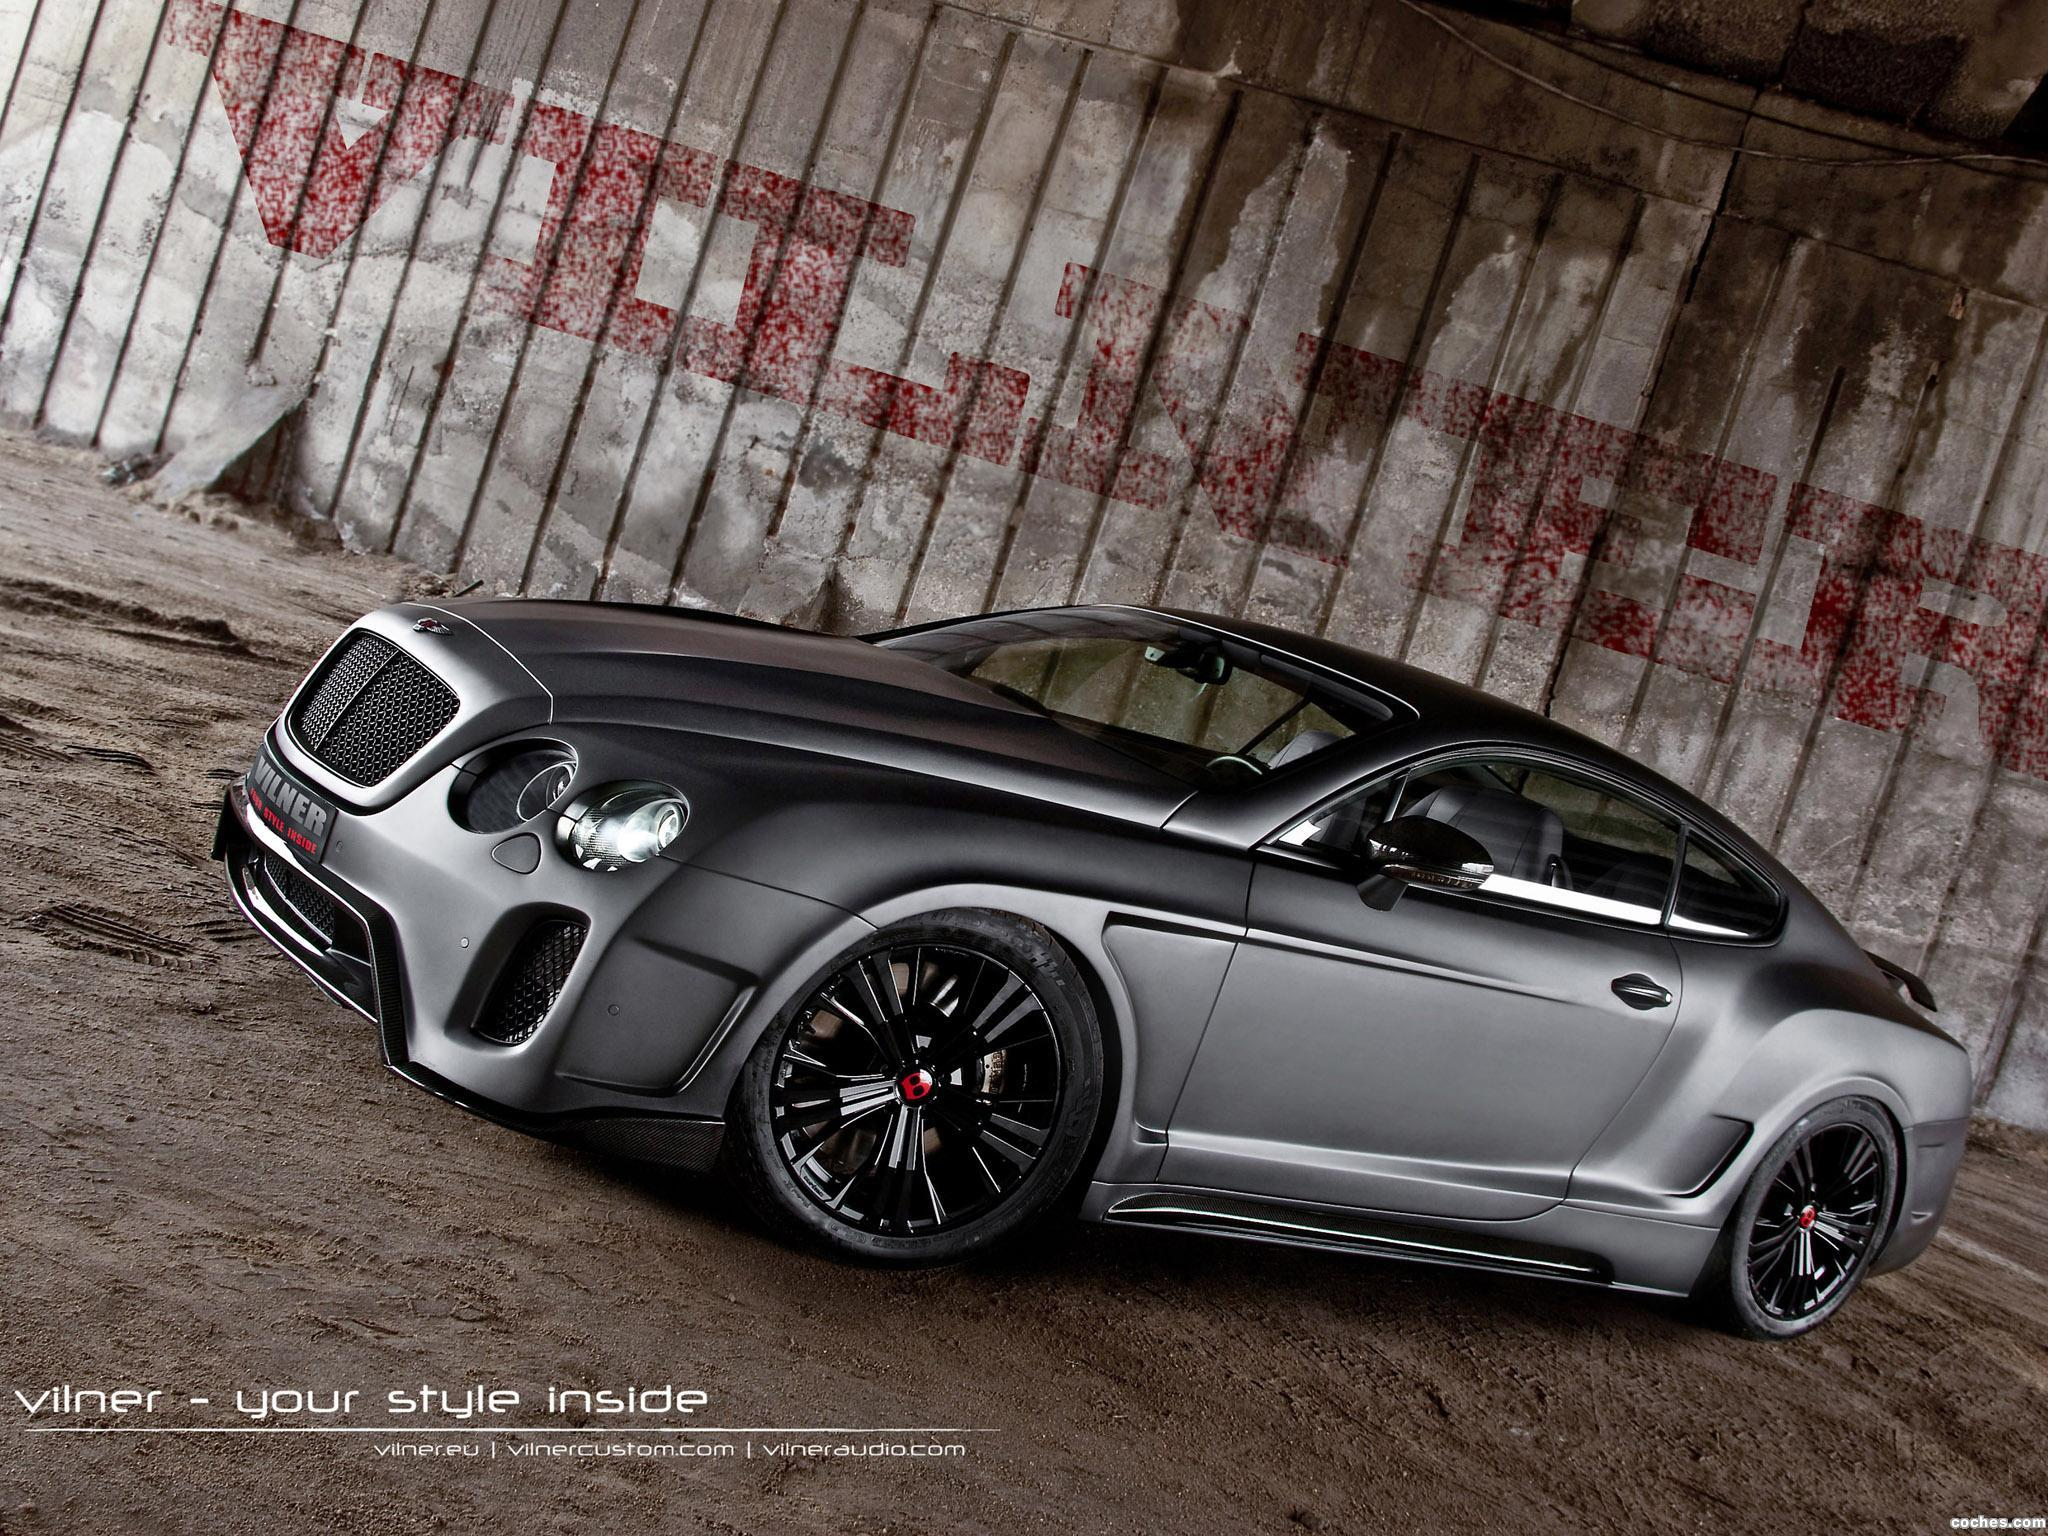 Foto 5 de Vilner Bentley Continental GT 2013